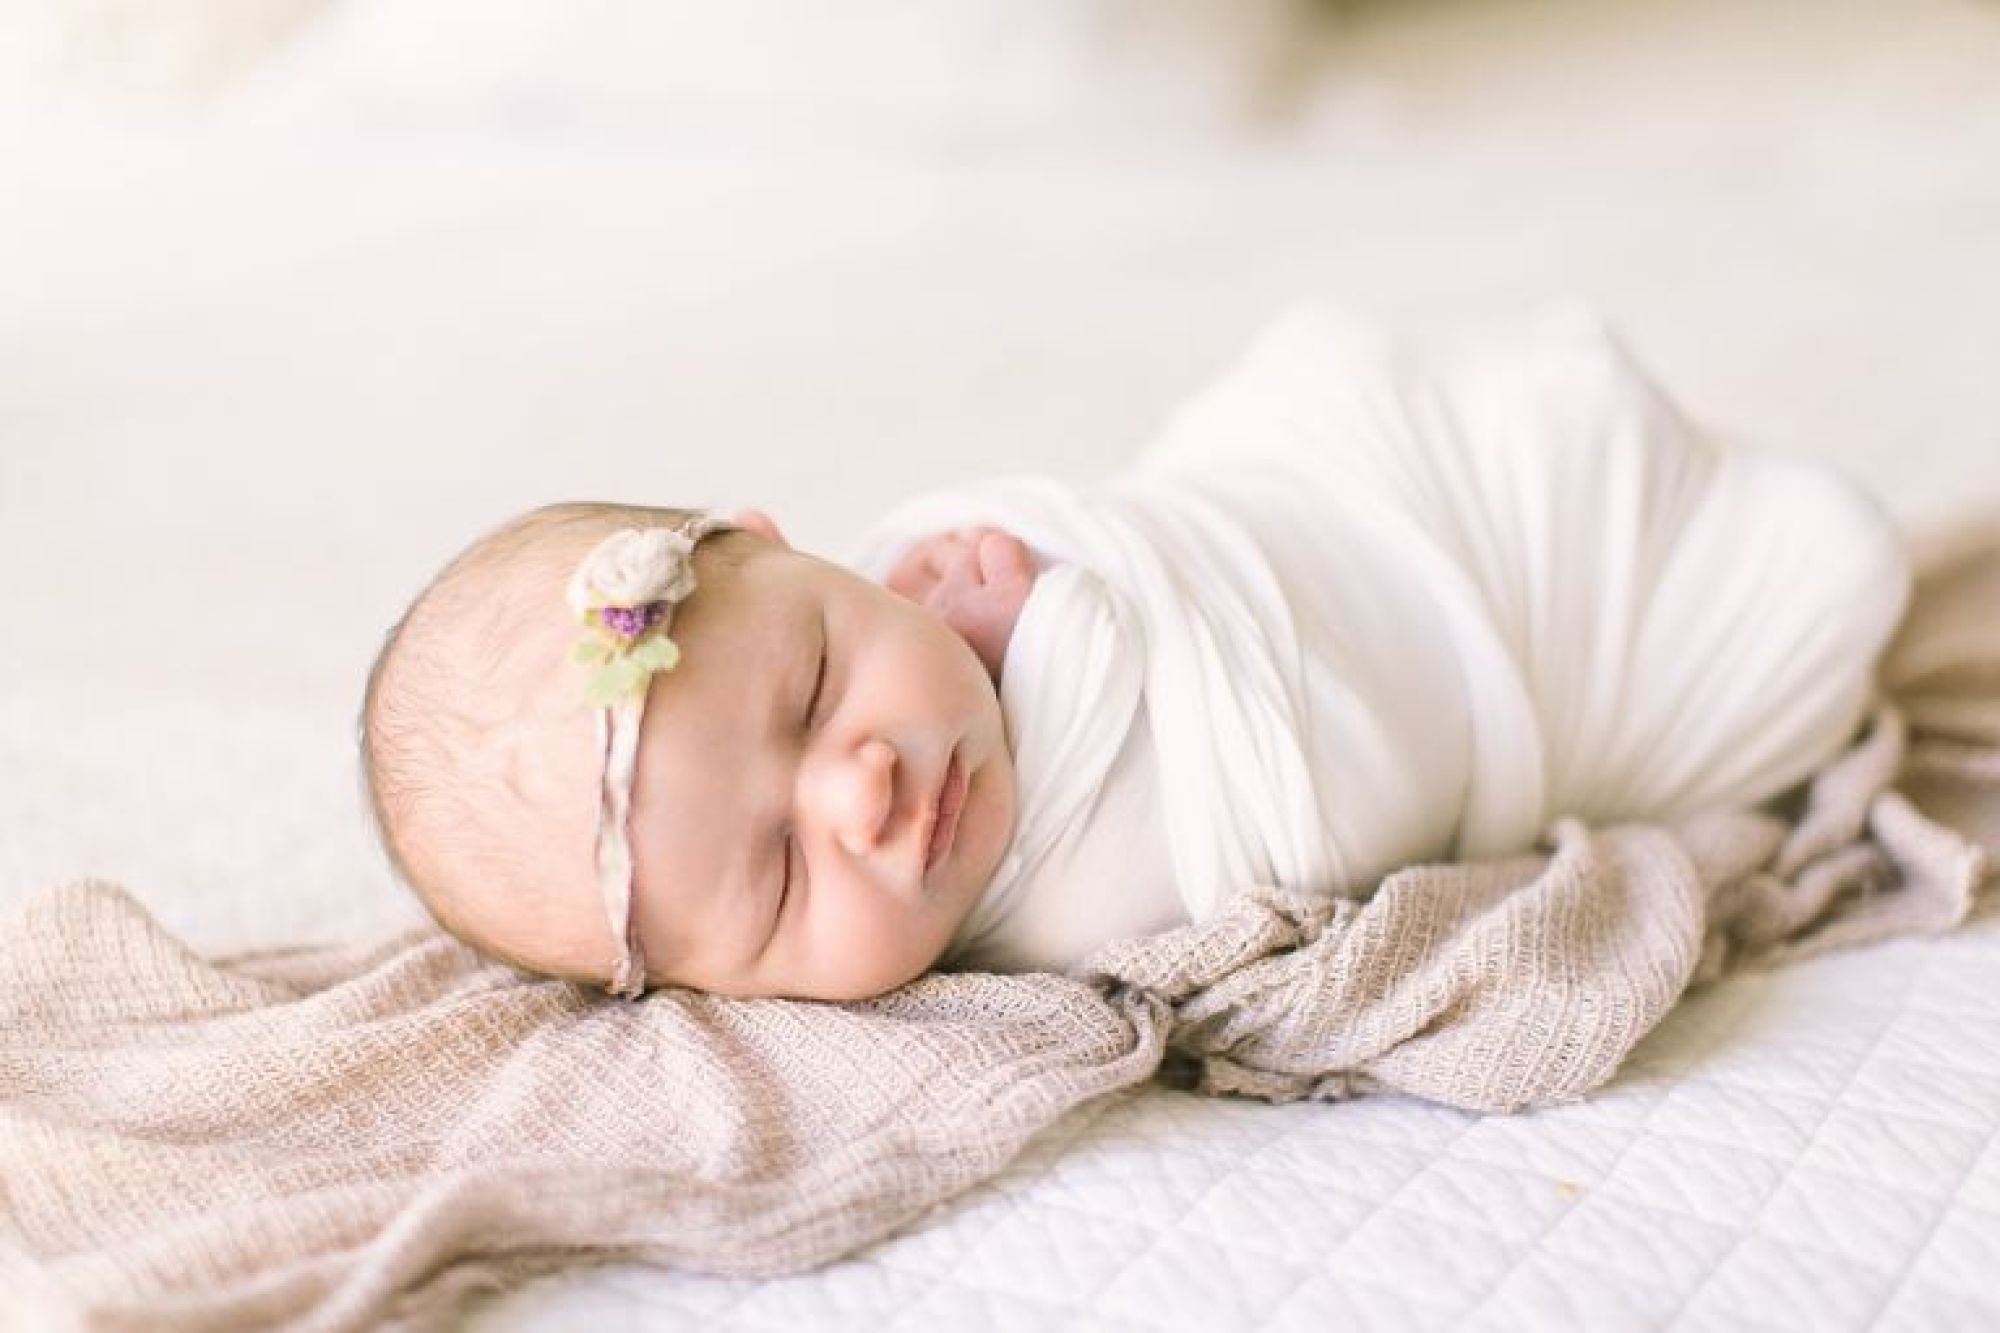 Baby girl newborn photoshoot in the studio in Missouri City, Texas. Photos by Courtney Griffin Photography.